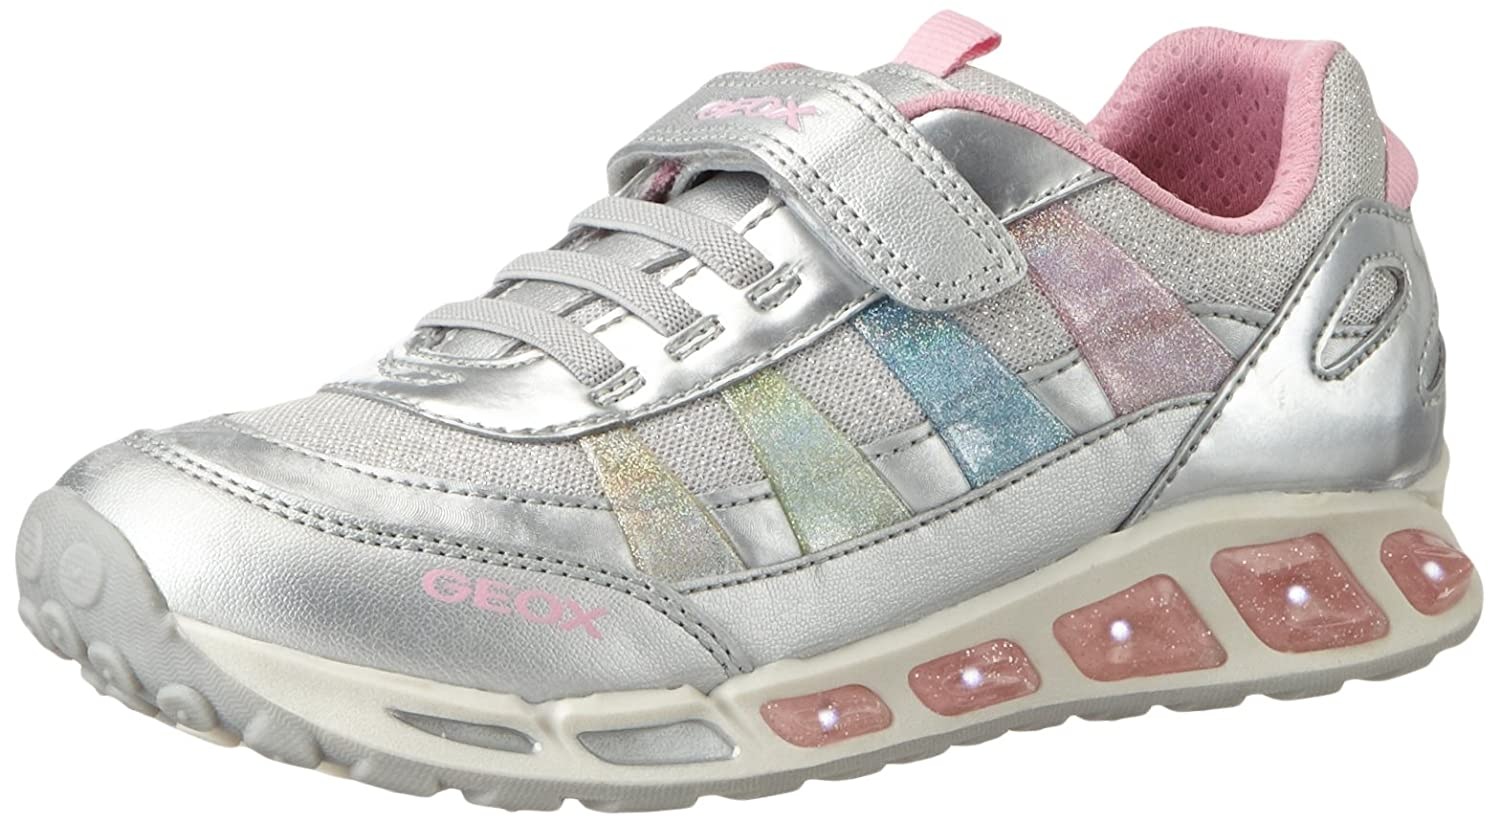 Geox J Shuttle G.A Girls Sneakers//Shoes